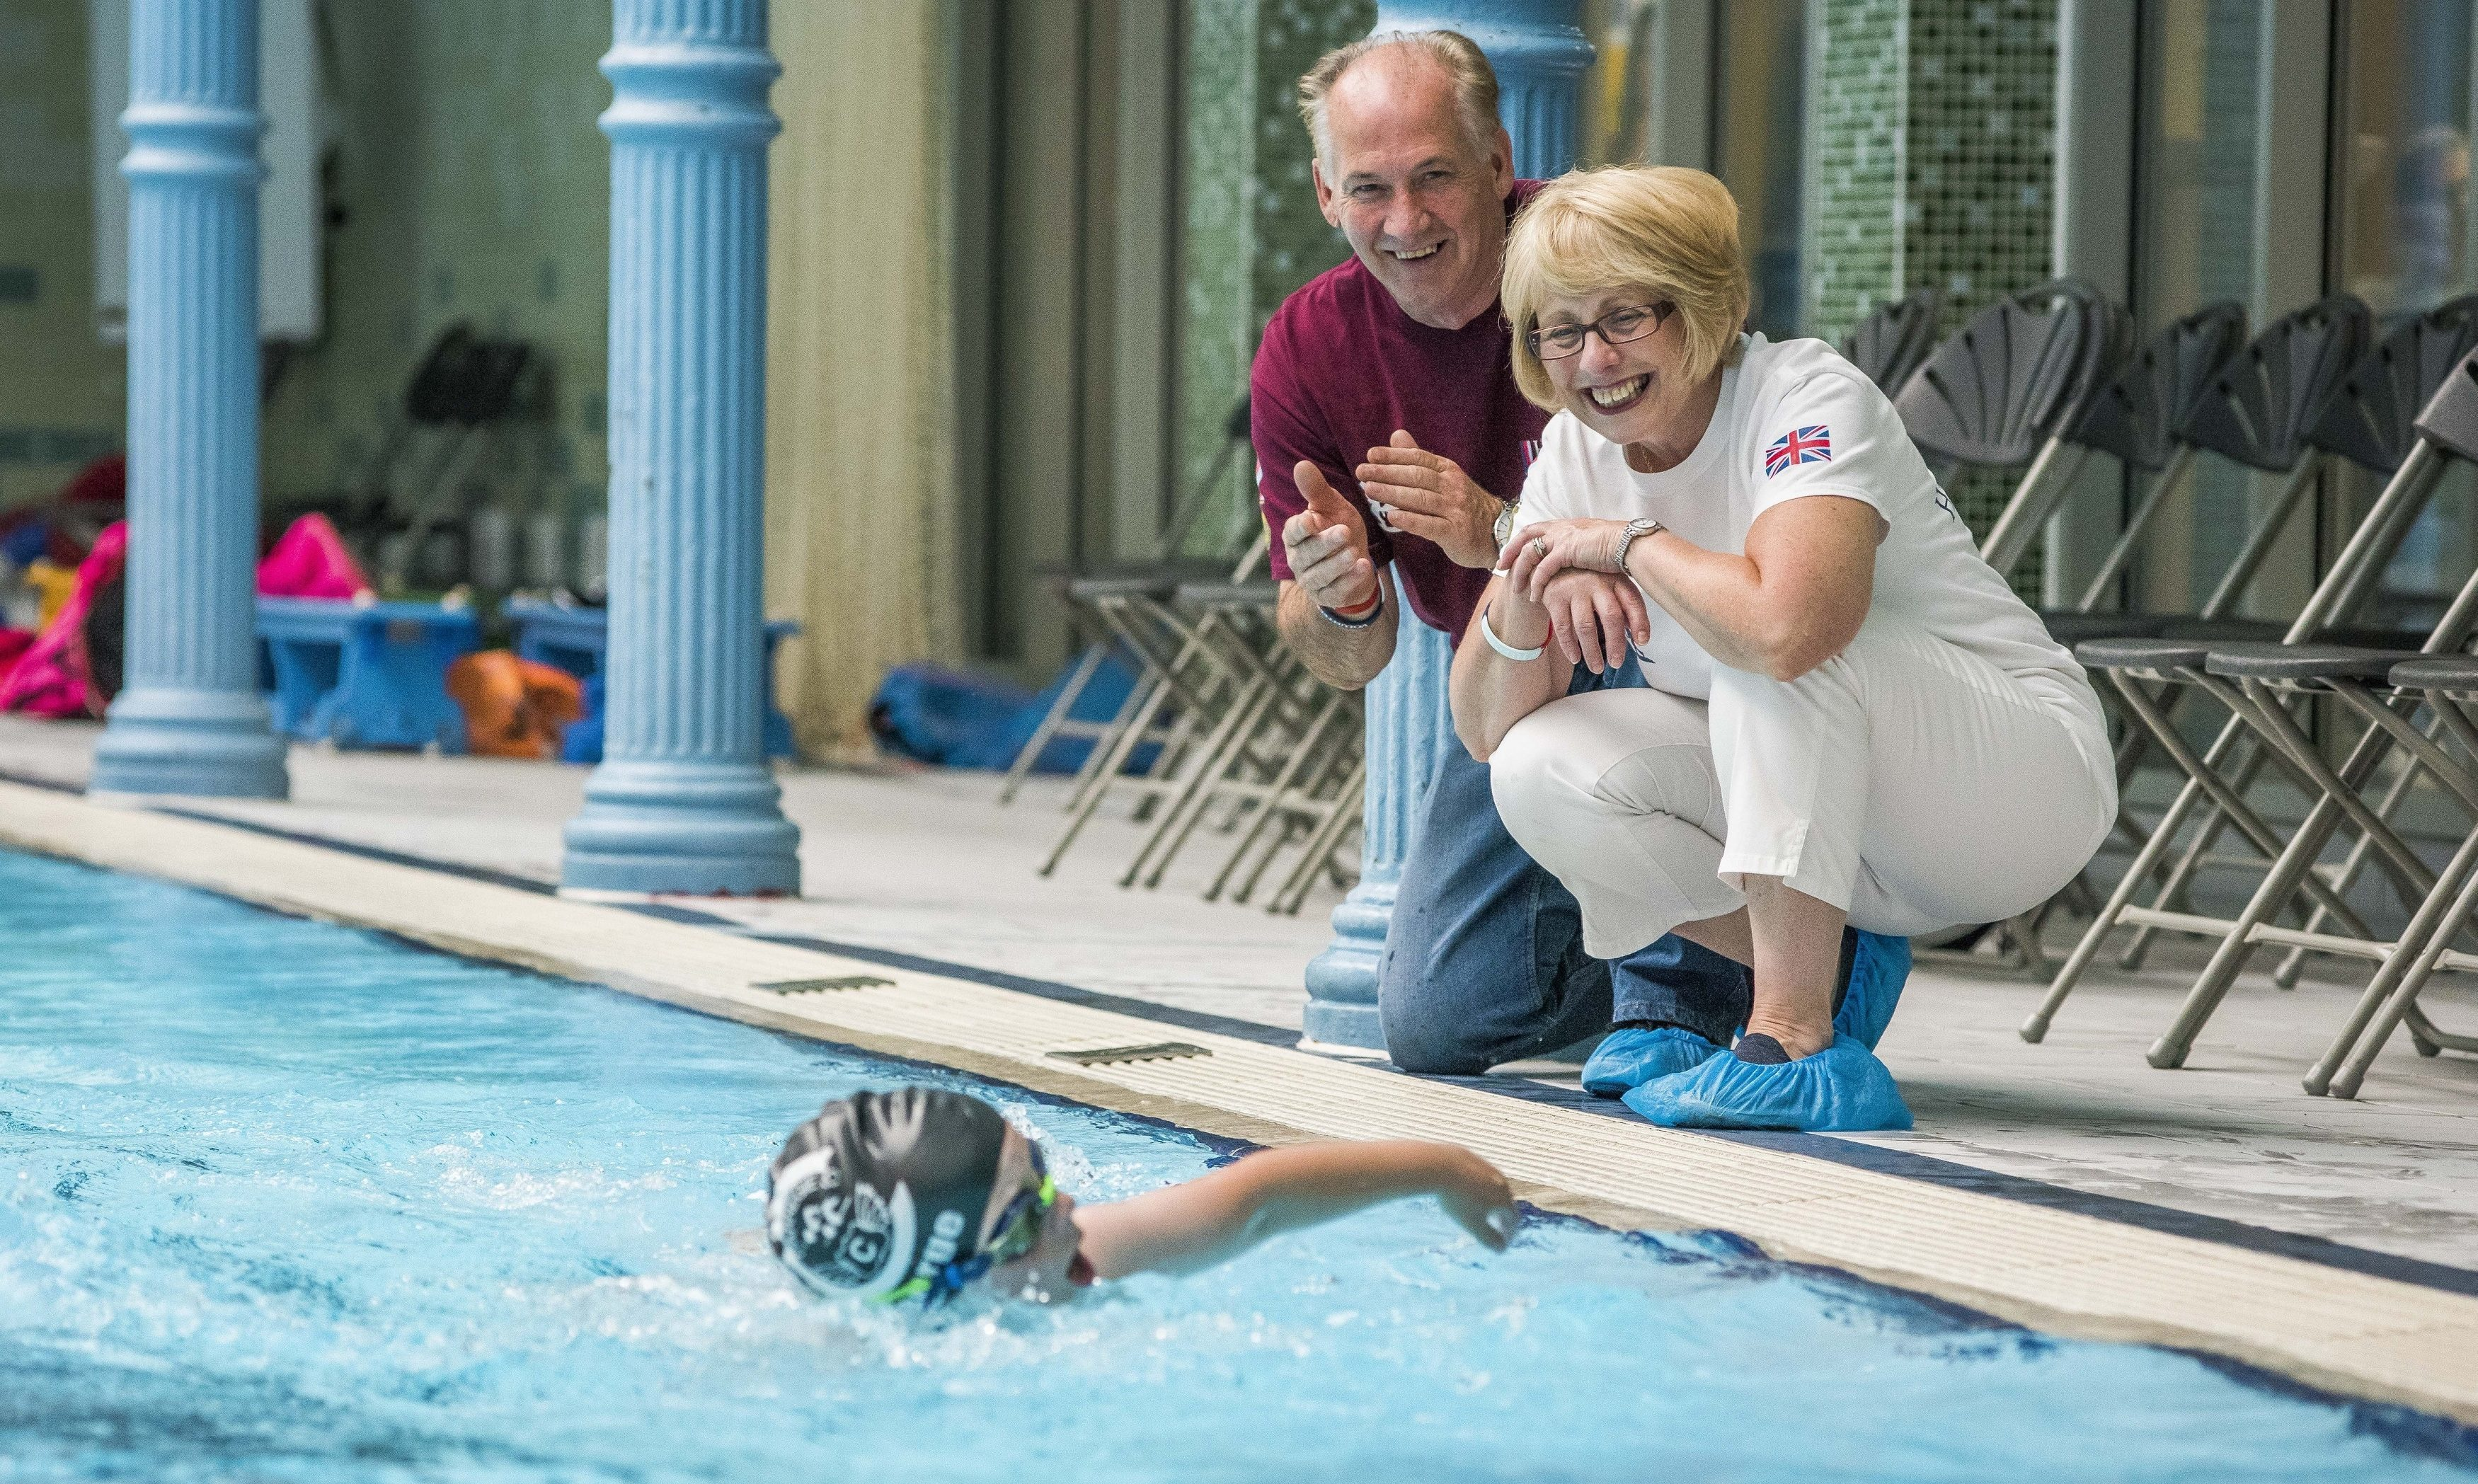 Captain David Seath's parents Pete and Libby were among the supporters as Carnegie Swimming Club swam the length of the English Channel and back.